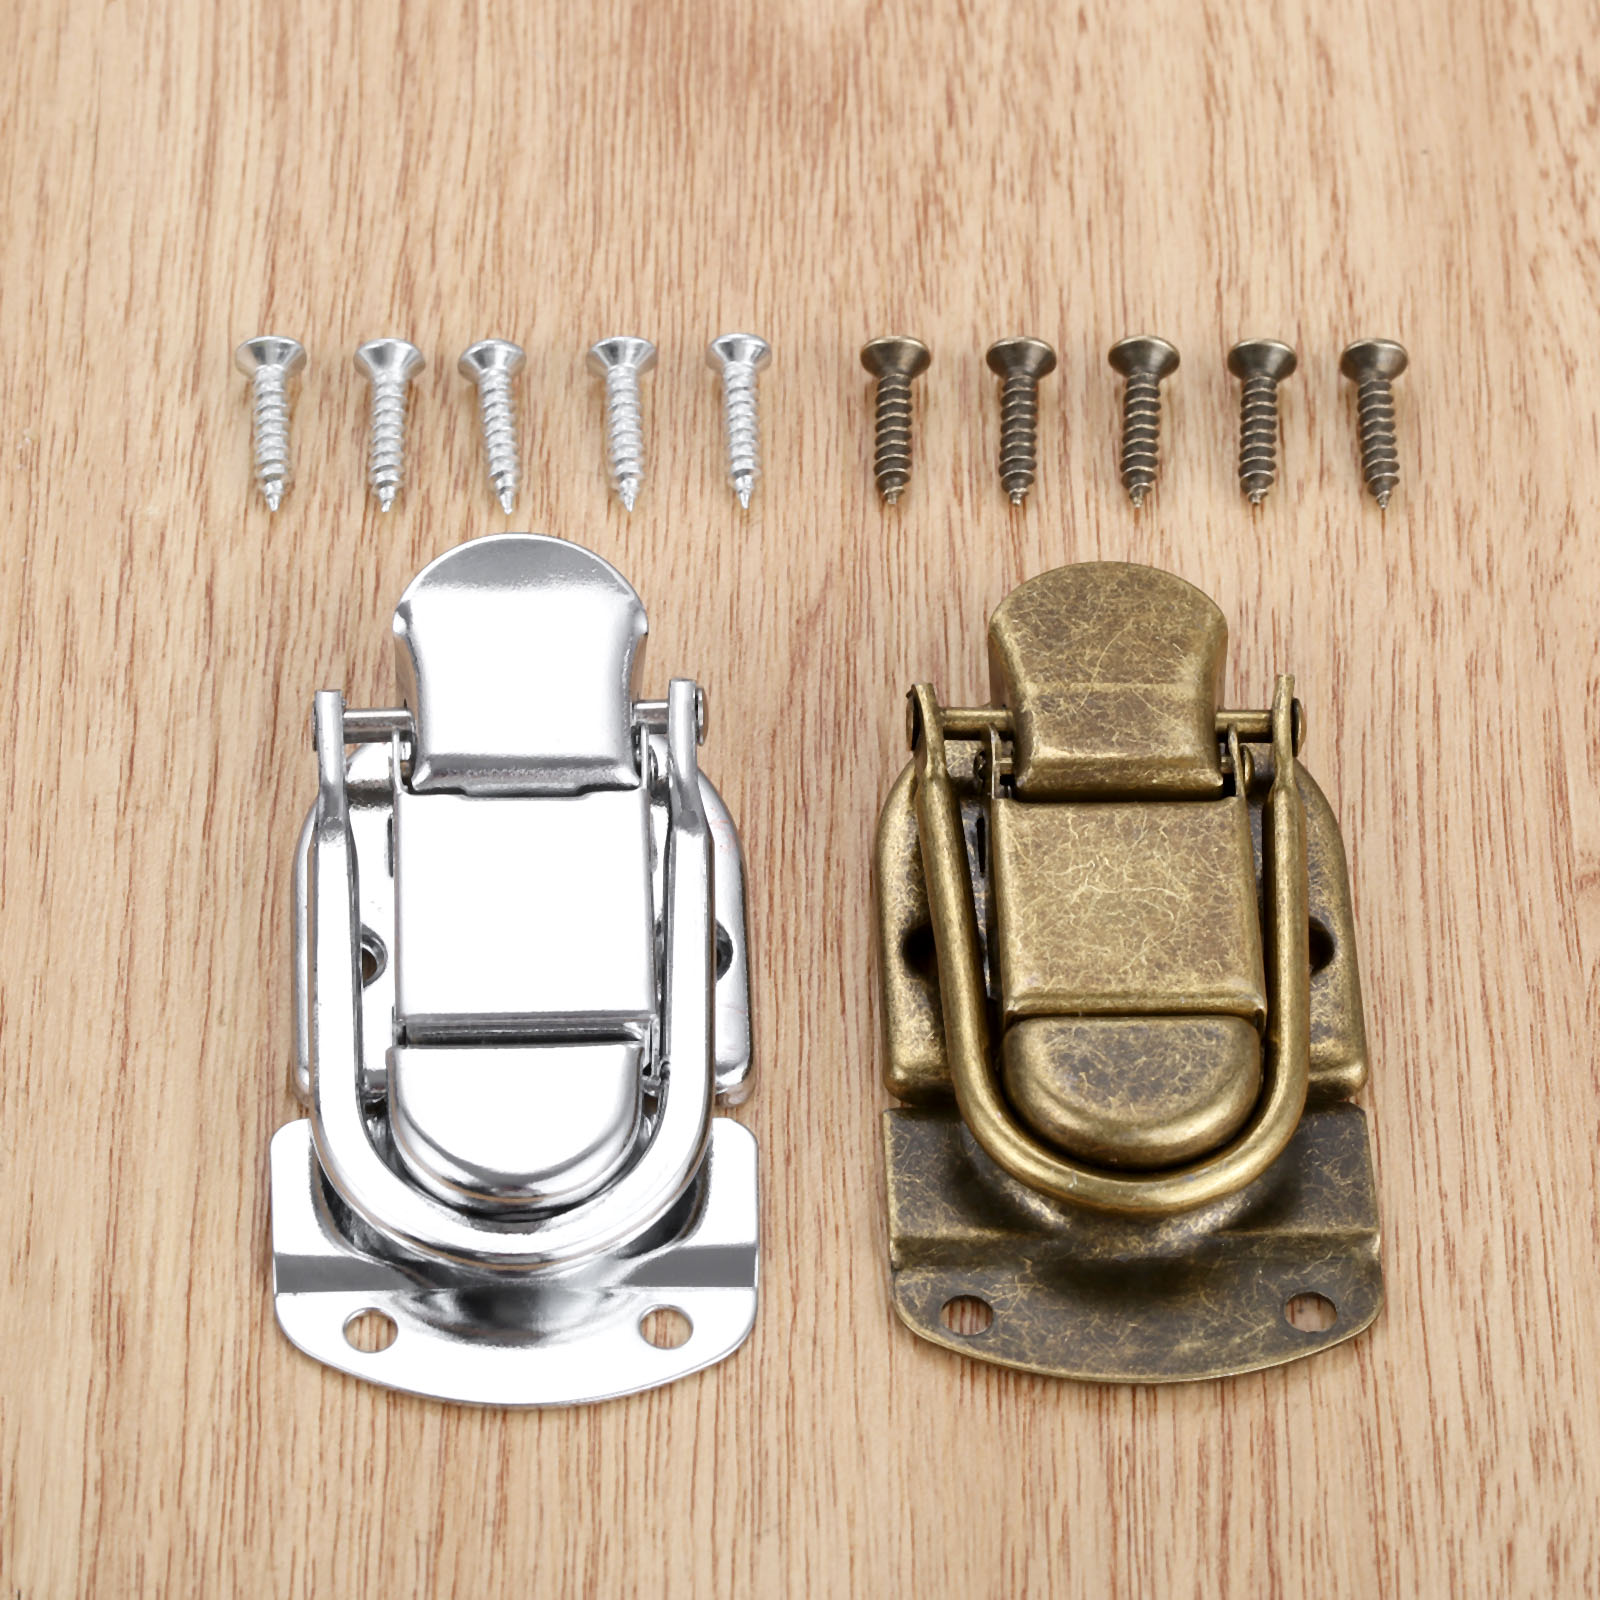 DRELD 1Pc 67*34m Vintage Metal Lock Chest Box Gift Box Suitcase Case Buckles Toggle Hasp Latch Catch Clasp Furniture Hardware